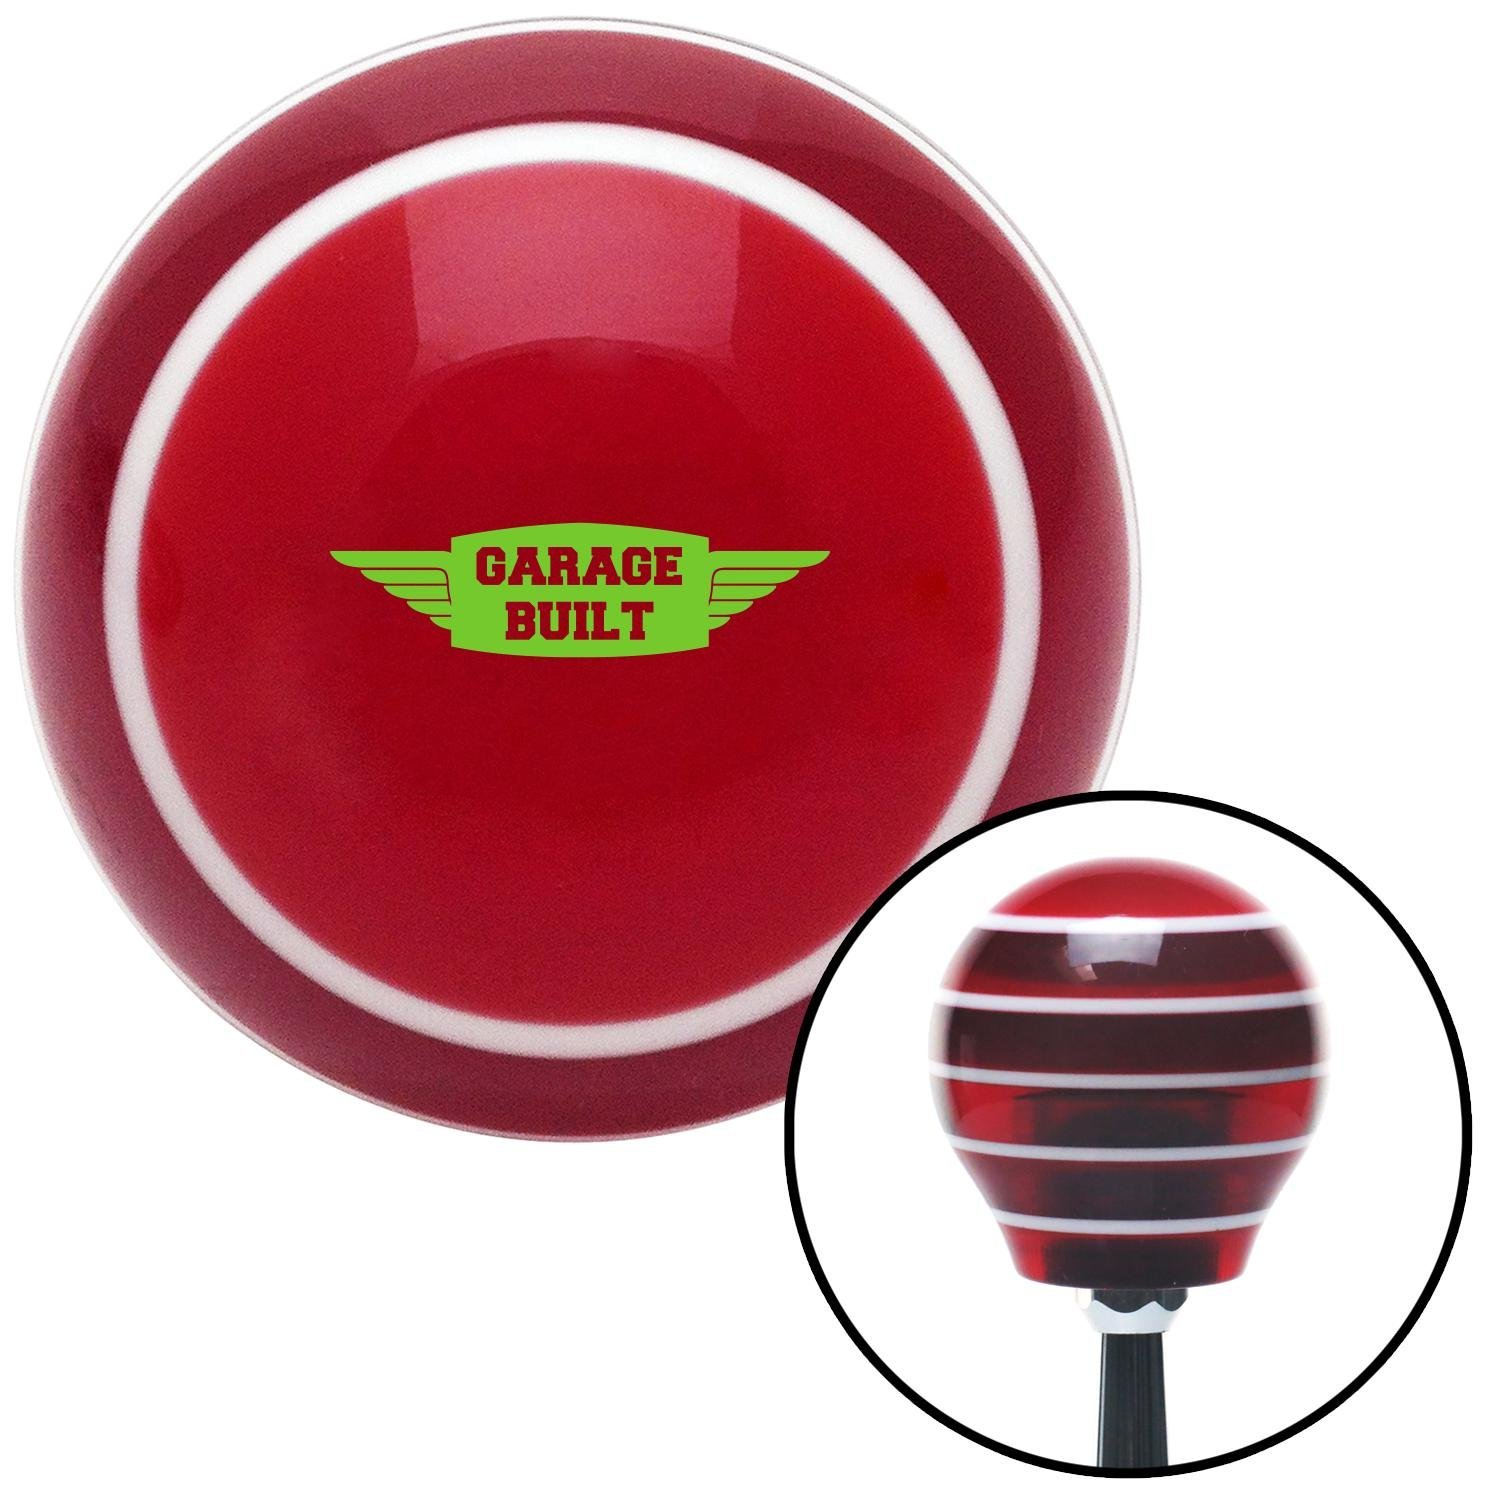 American Shifter 274547 Shift Knob Green Garage Built Red Stripe with M16 x 1.5 Insert